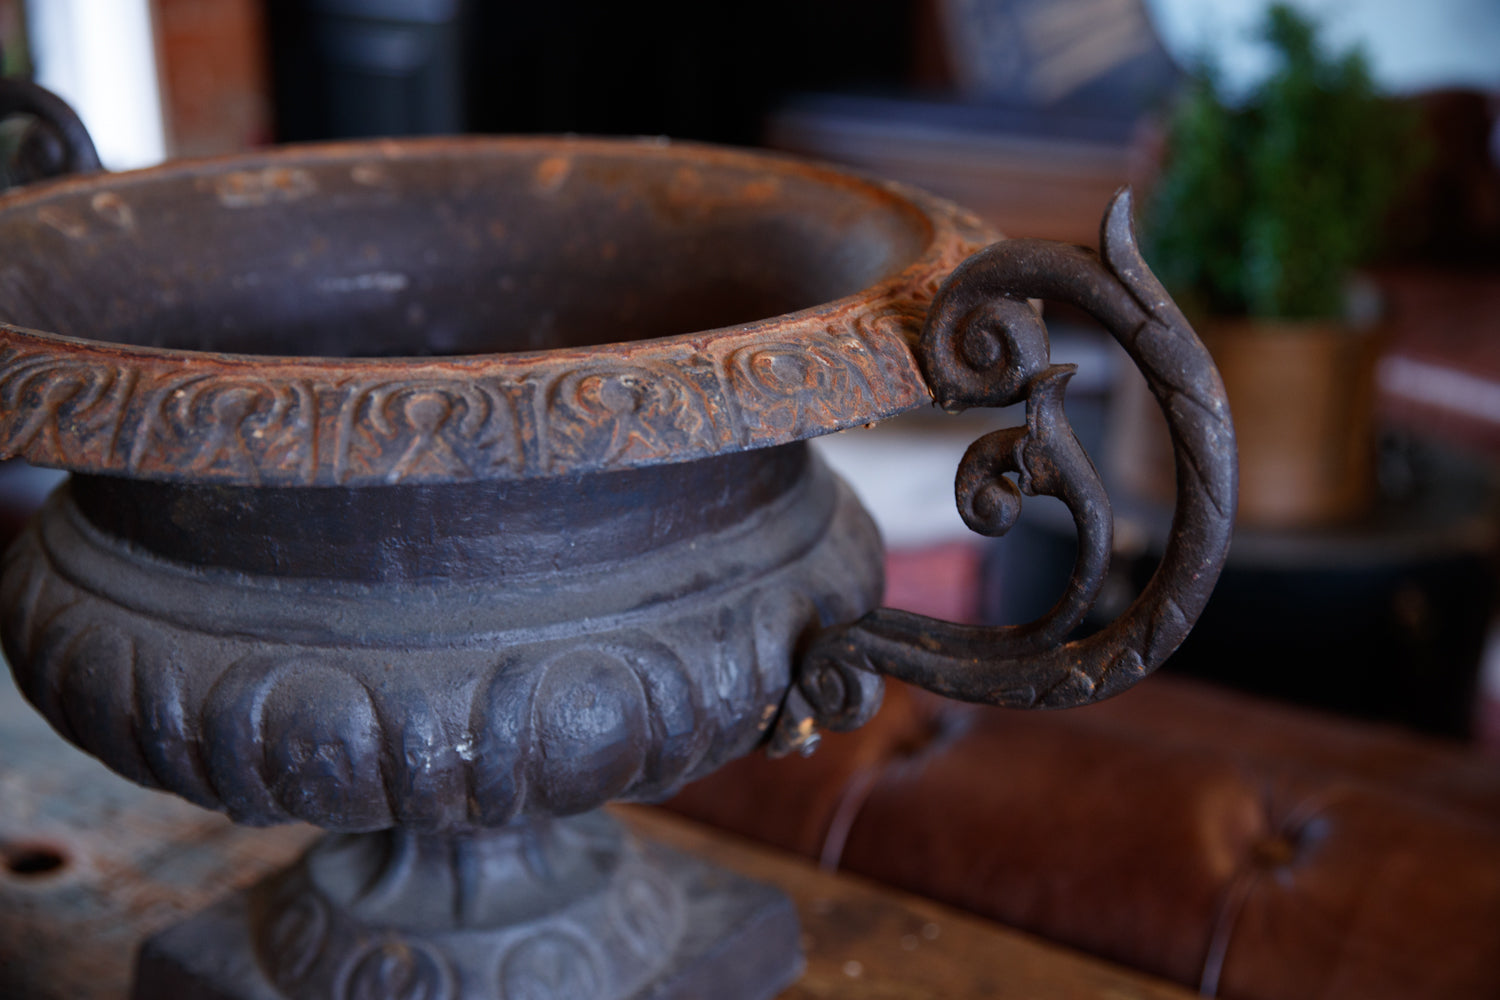 French Cast Iron Urns - Black Aged Patina